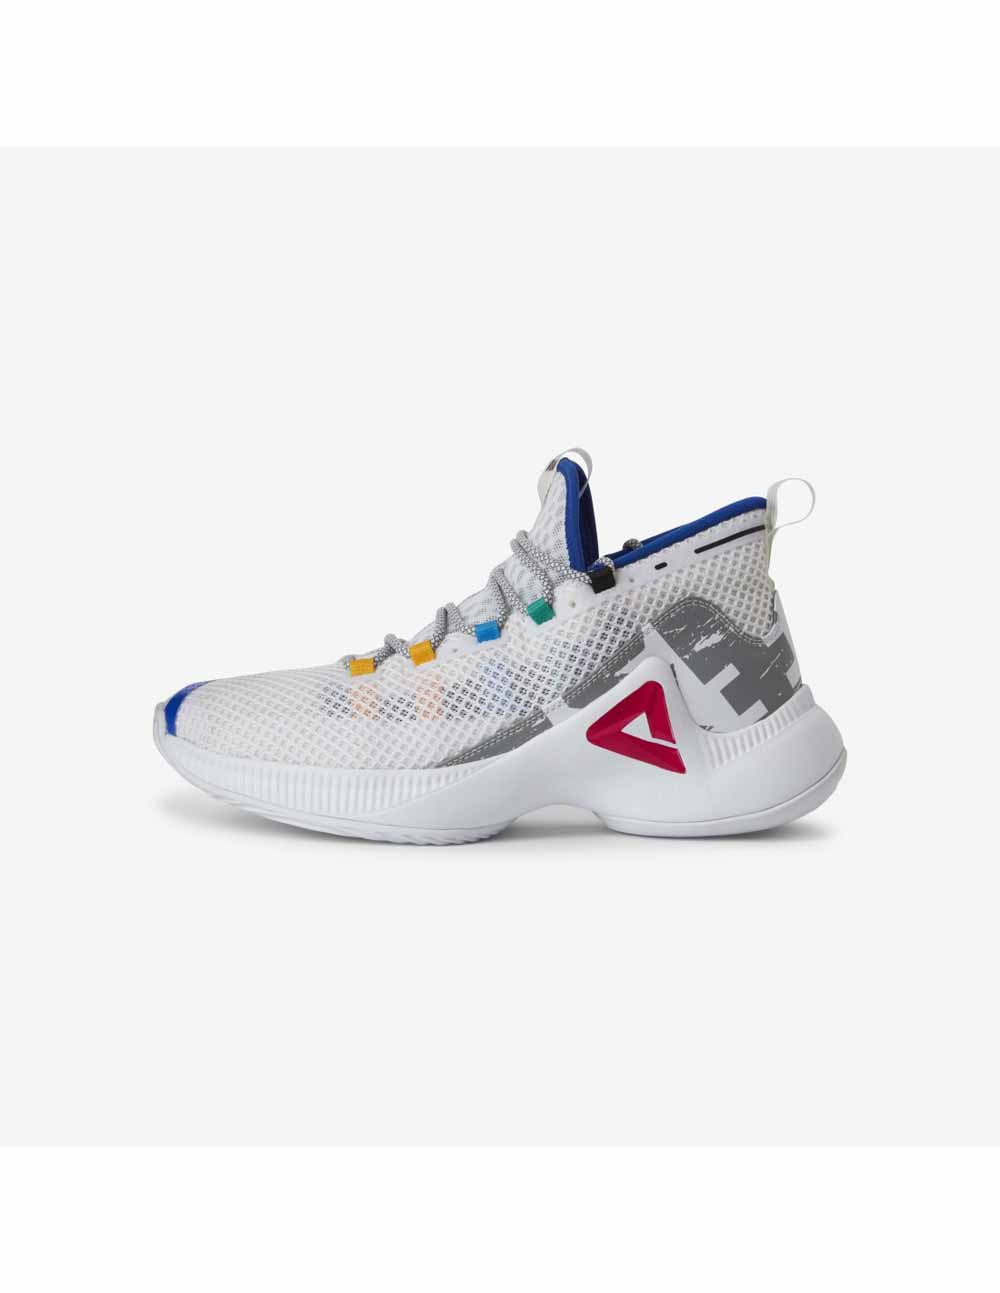 PEAK Basketballschuh Lightning